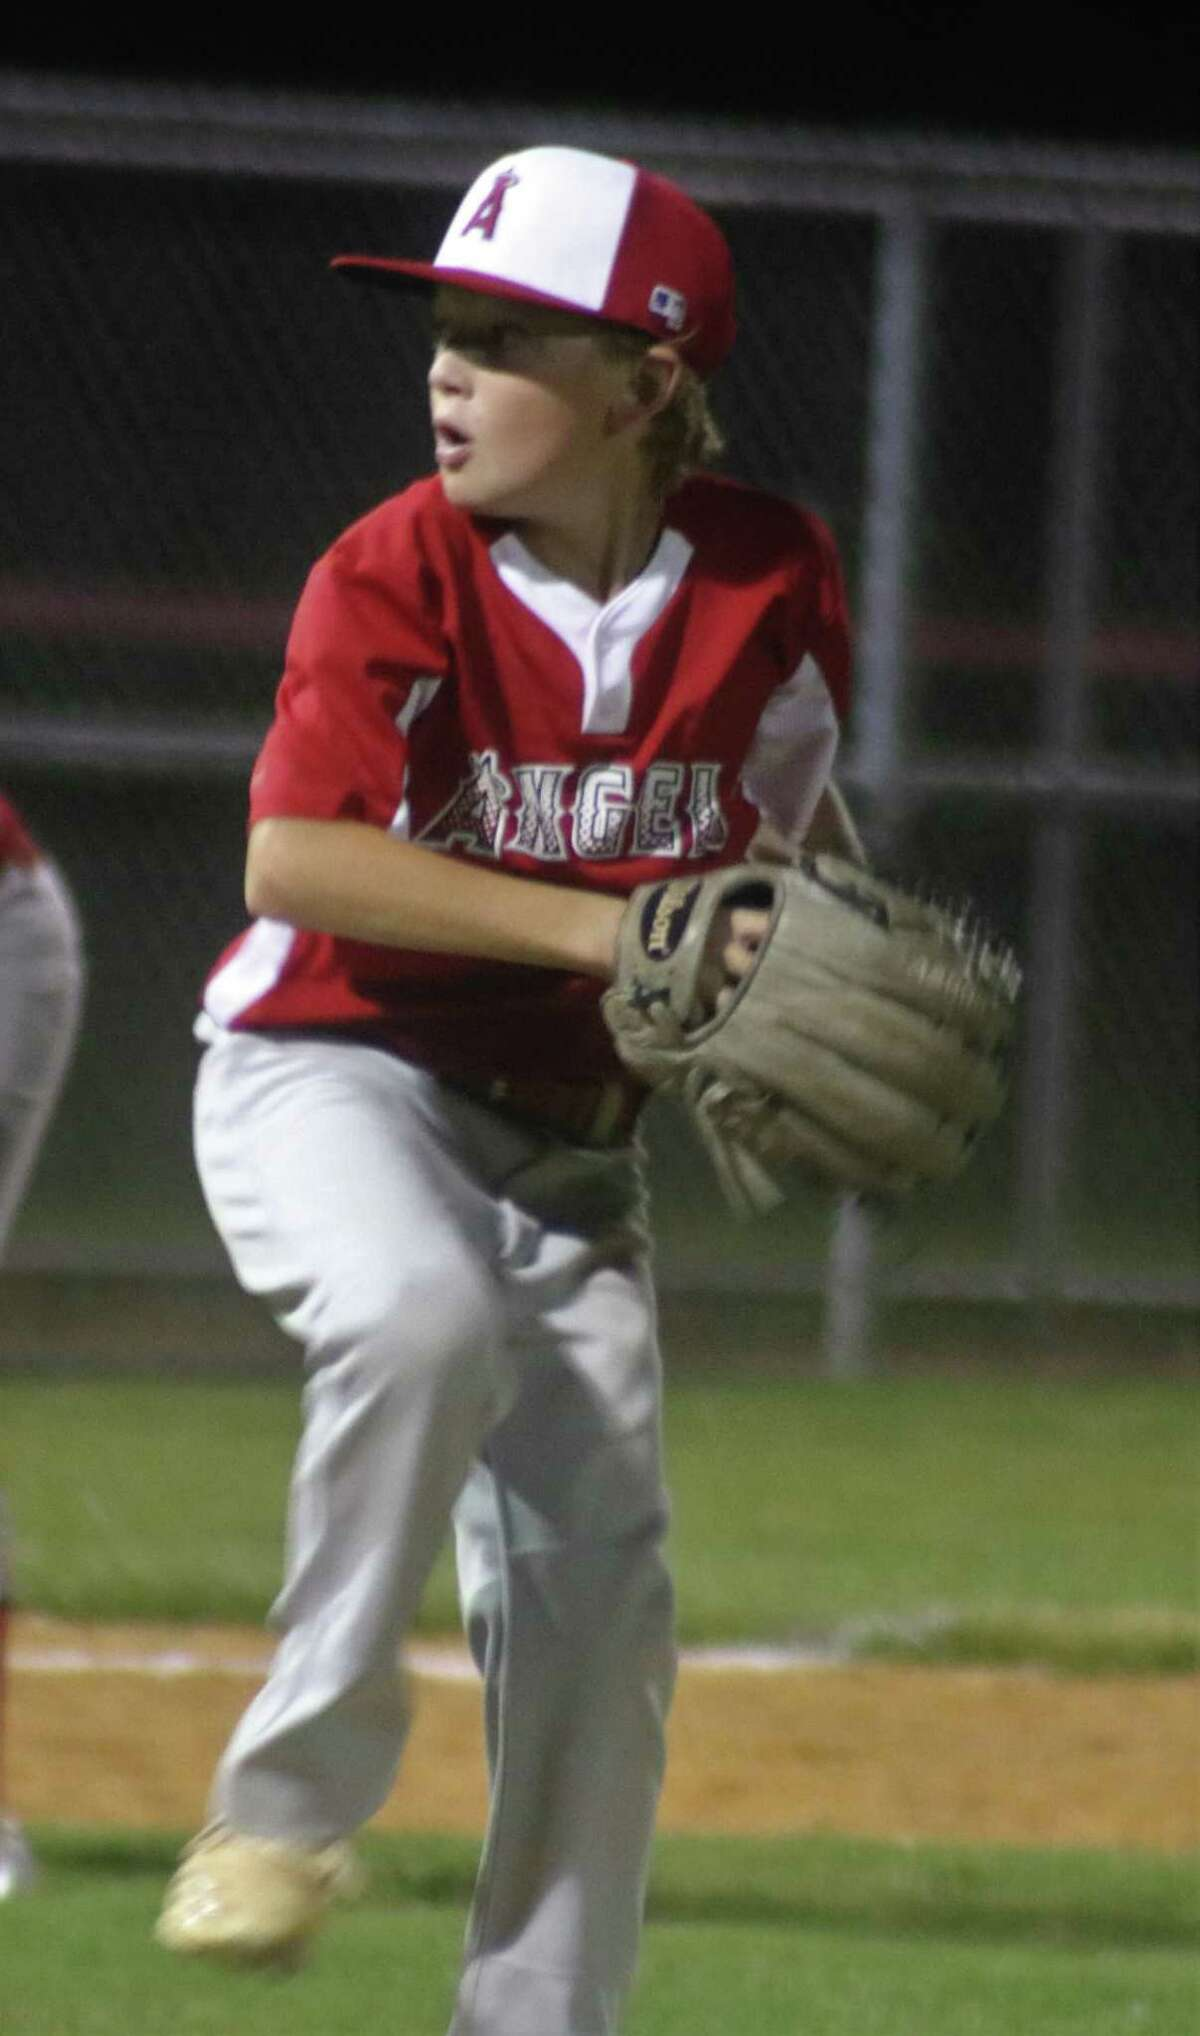 Colt Marlow goes into his wind-up during his three innings of almost pitching a perfect game. The southpaw struck out four in helping the Angels win convincingly.